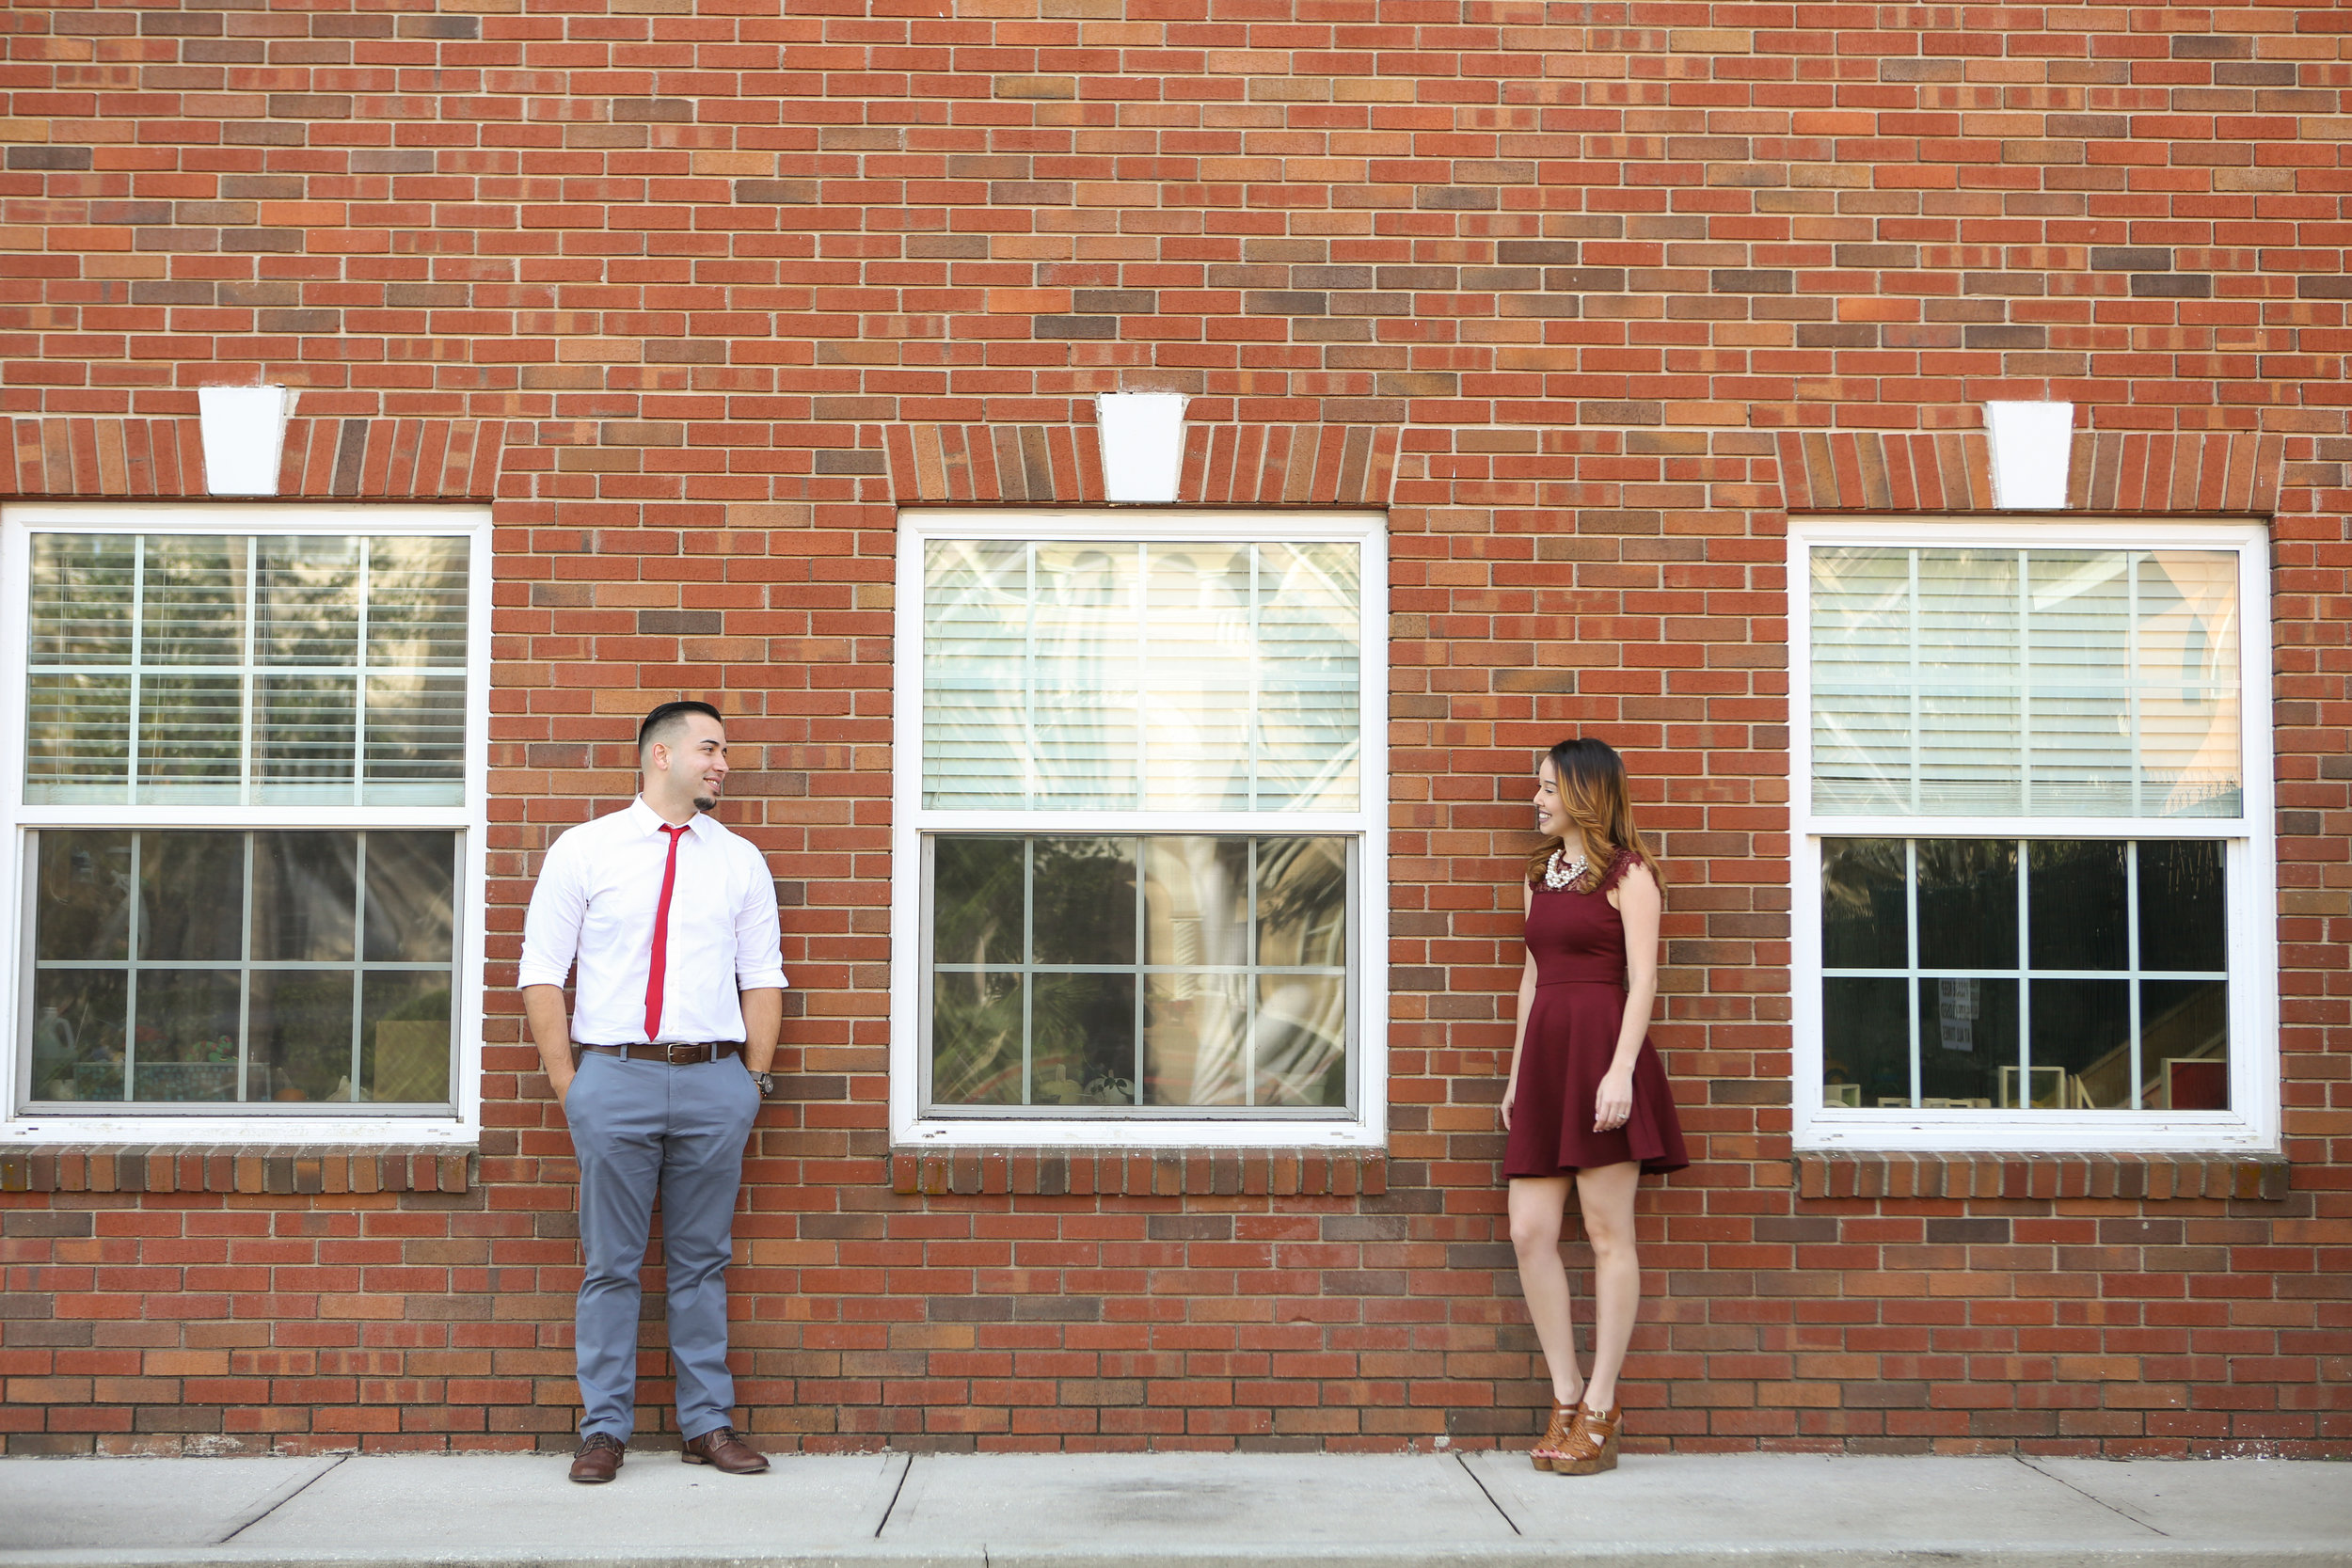 orlando-wedding-photographer-engagement-session-photography-.city.jpg